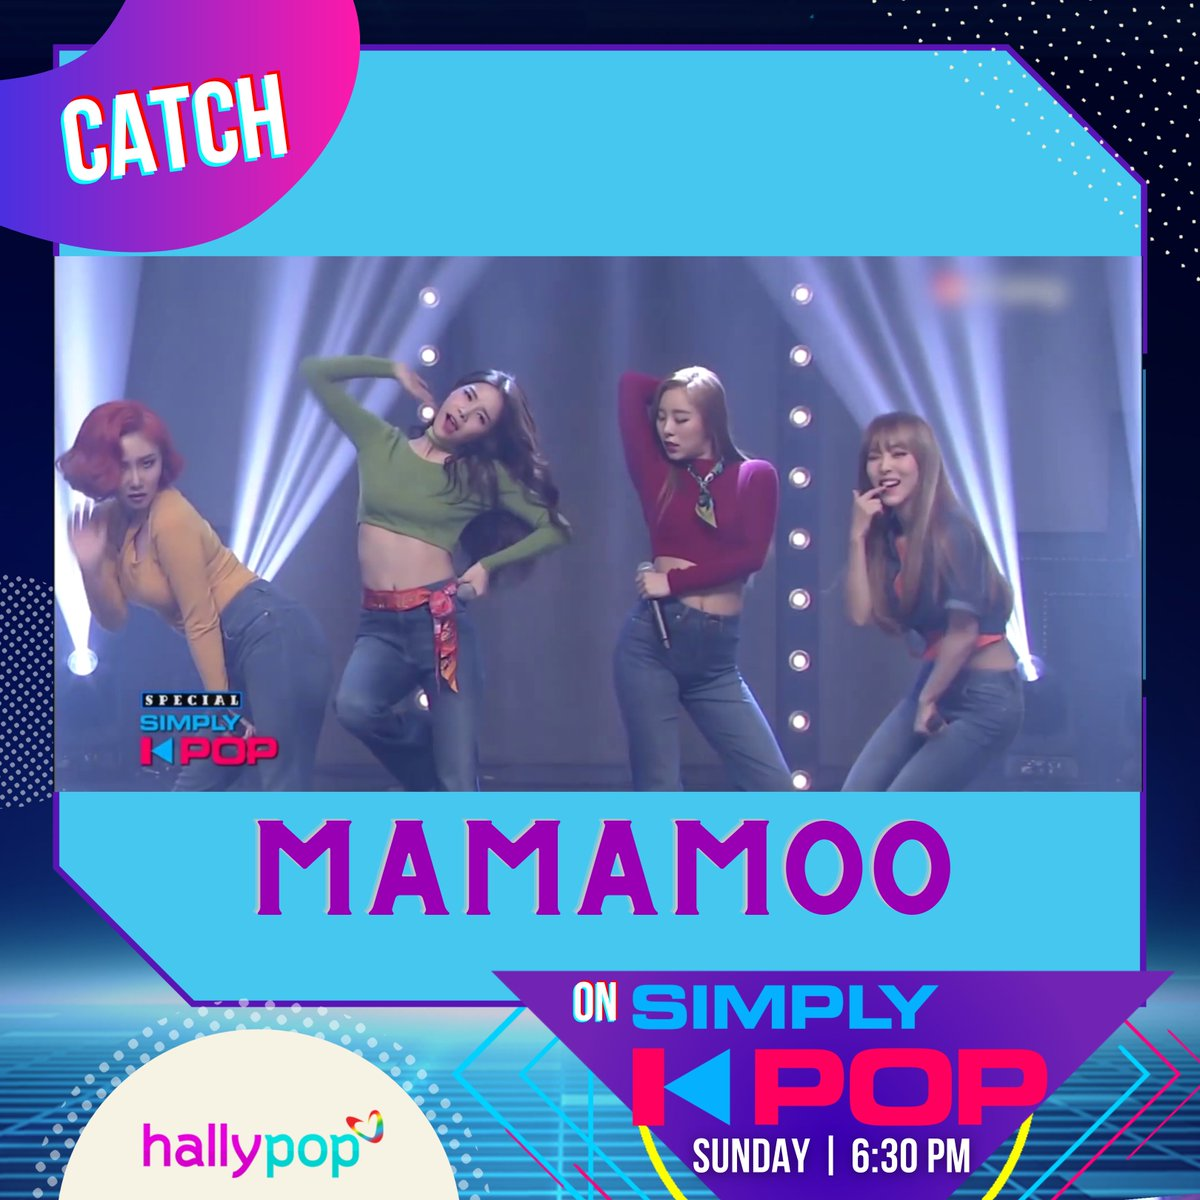 MooMoos, it is going to be a great Sunday for us! See you on #SimplyKPop!